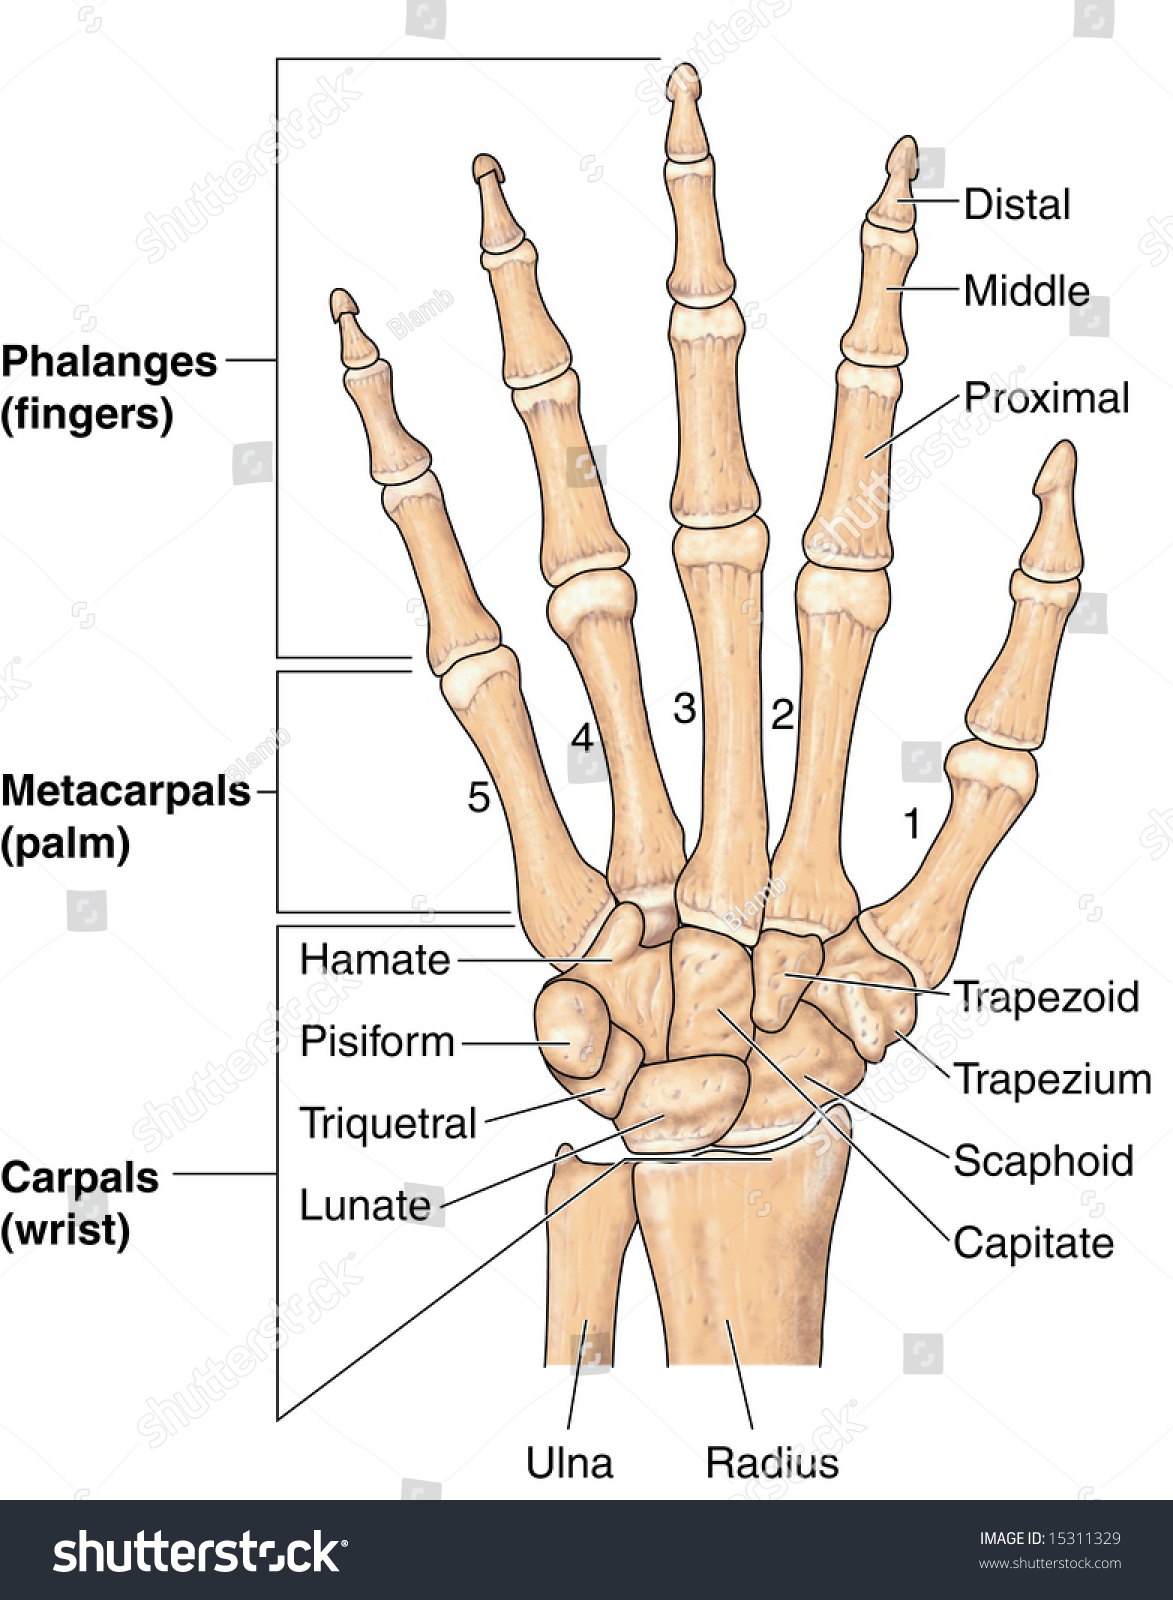 human hand bones labeled stock illustration 15311329 - shutterstock, Human Body